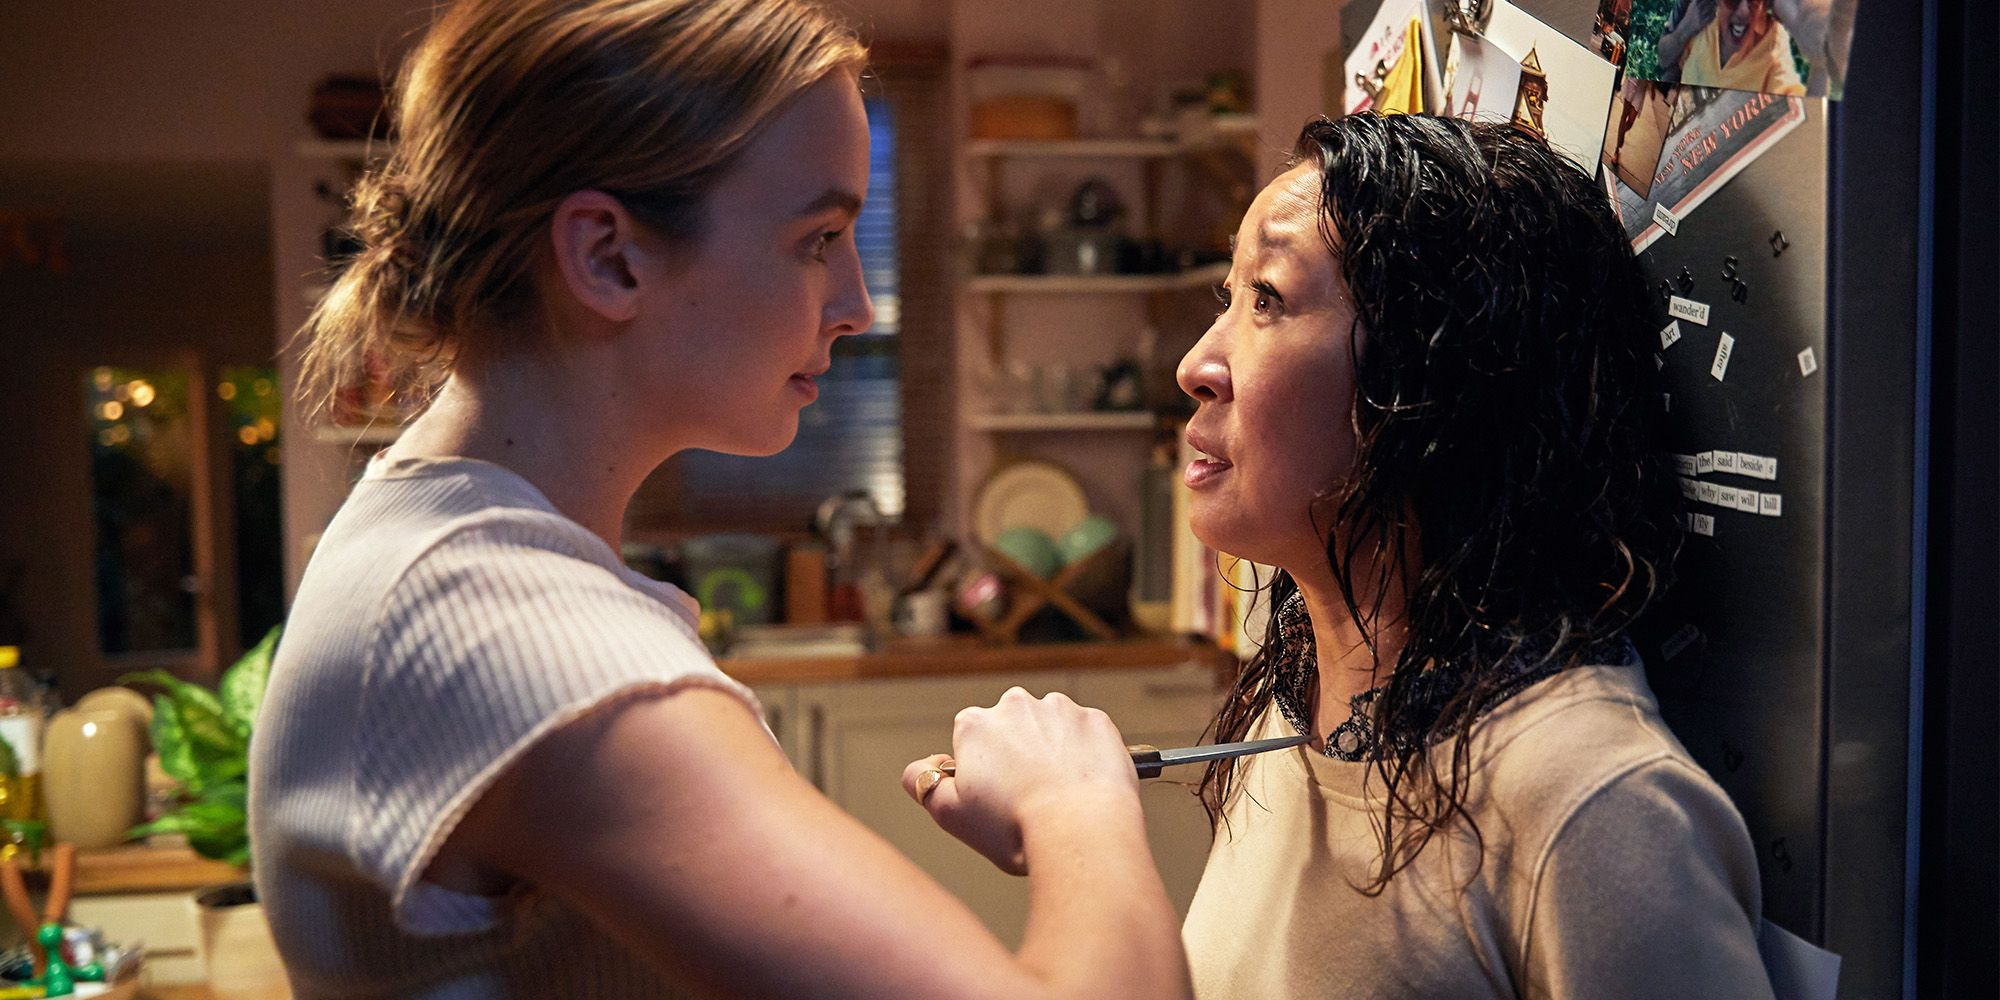 'Killing Eve' Films at Korean Barbecue in New Malden, Drops Least Surprising Spoiler Ever